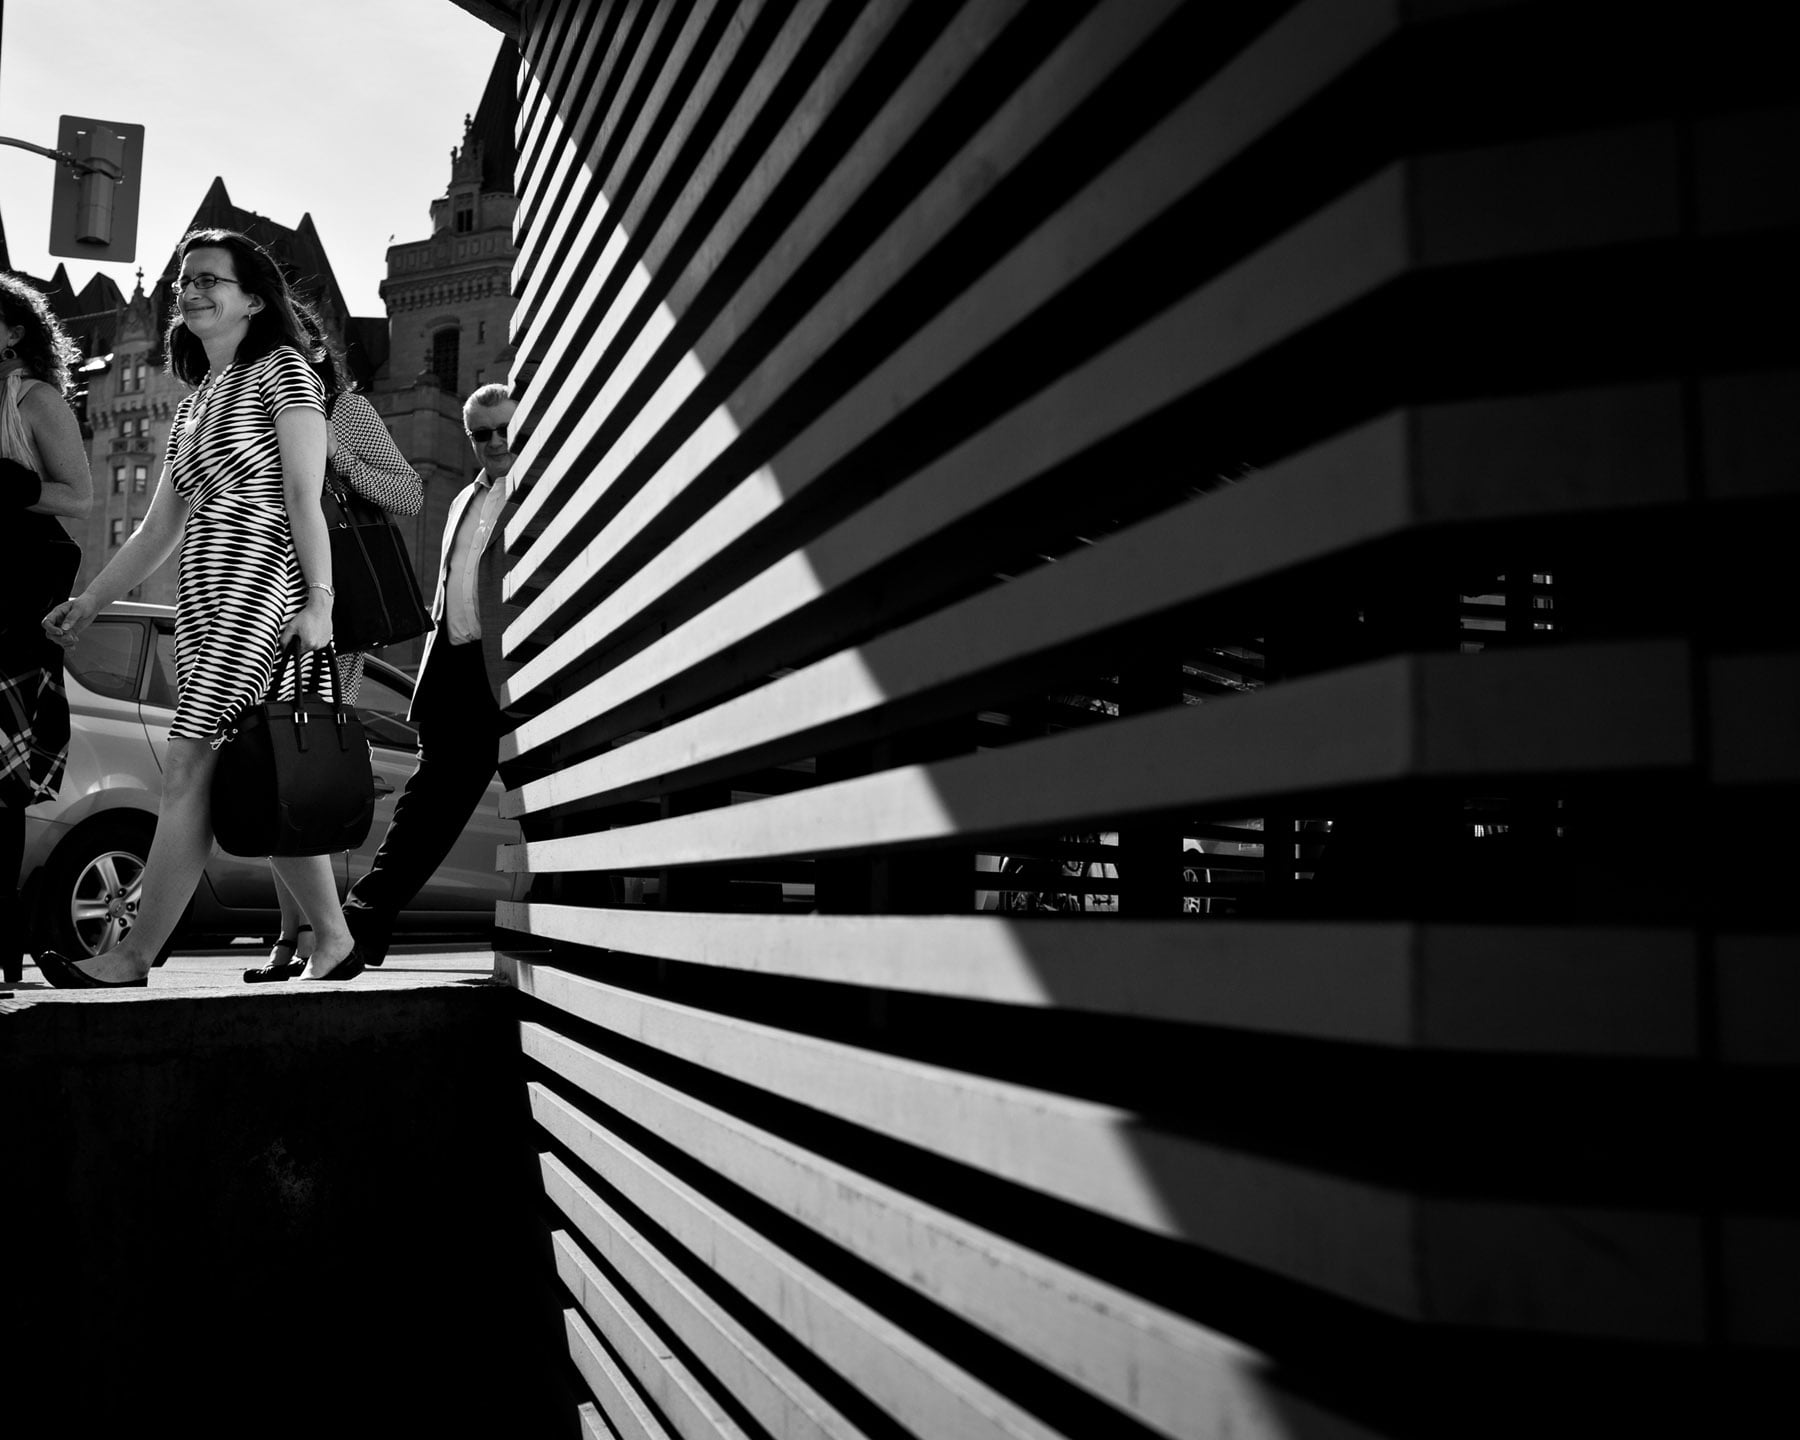 Street photography of a woman in striped dress walking downtown Ottawa, juxtaposition against a striped wall of a building.